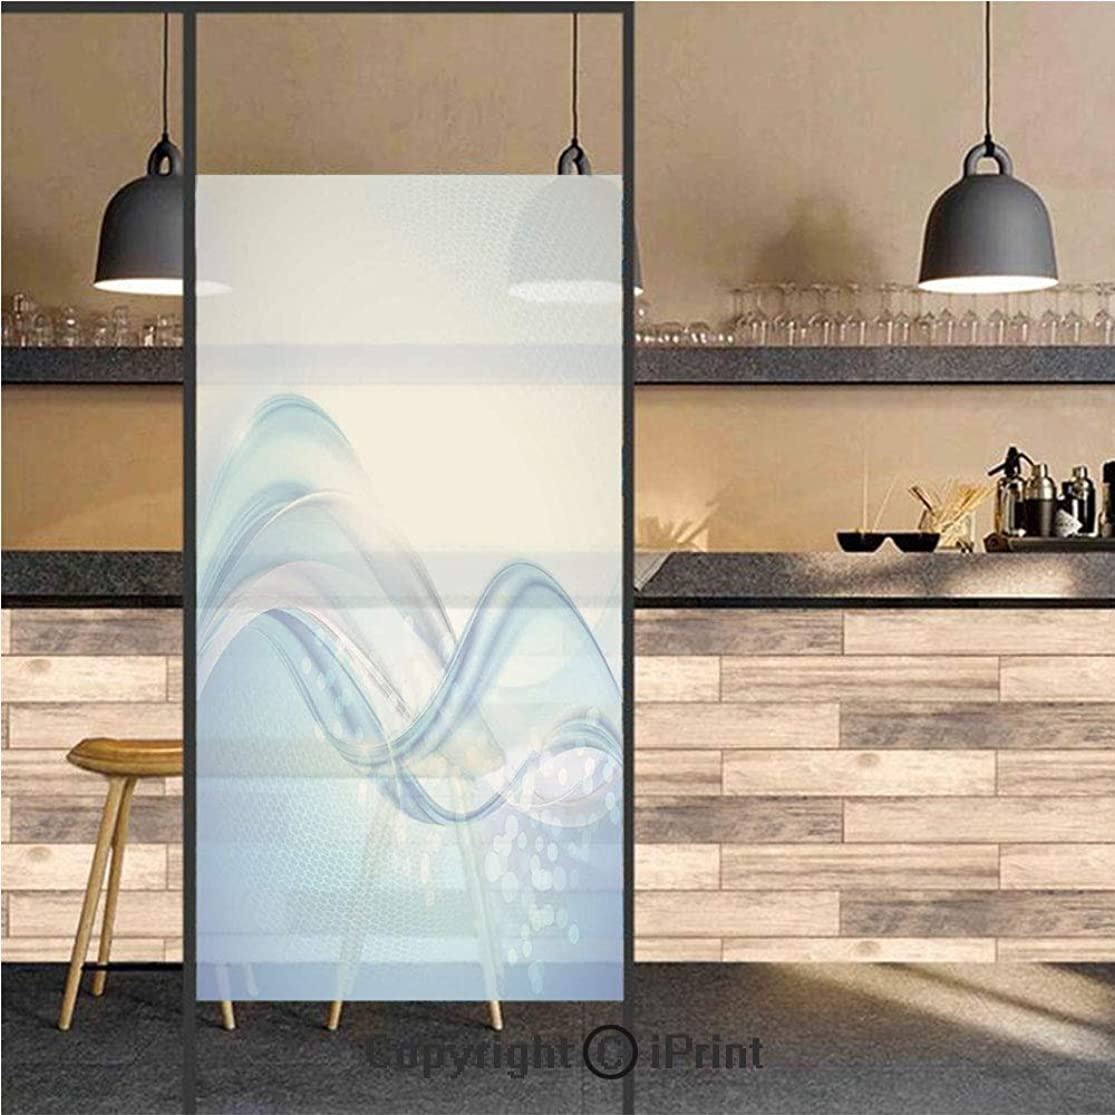 3D Decorative Privacy Window Films,Modern Wavy Ocean Surfer Summertime Themed Bubble Detailed Artwork,No-Glue Self Static Cling Glass Film for Home Bedroom Bathroom Kitchen Office 17.5x71 Inch opgwjswb3